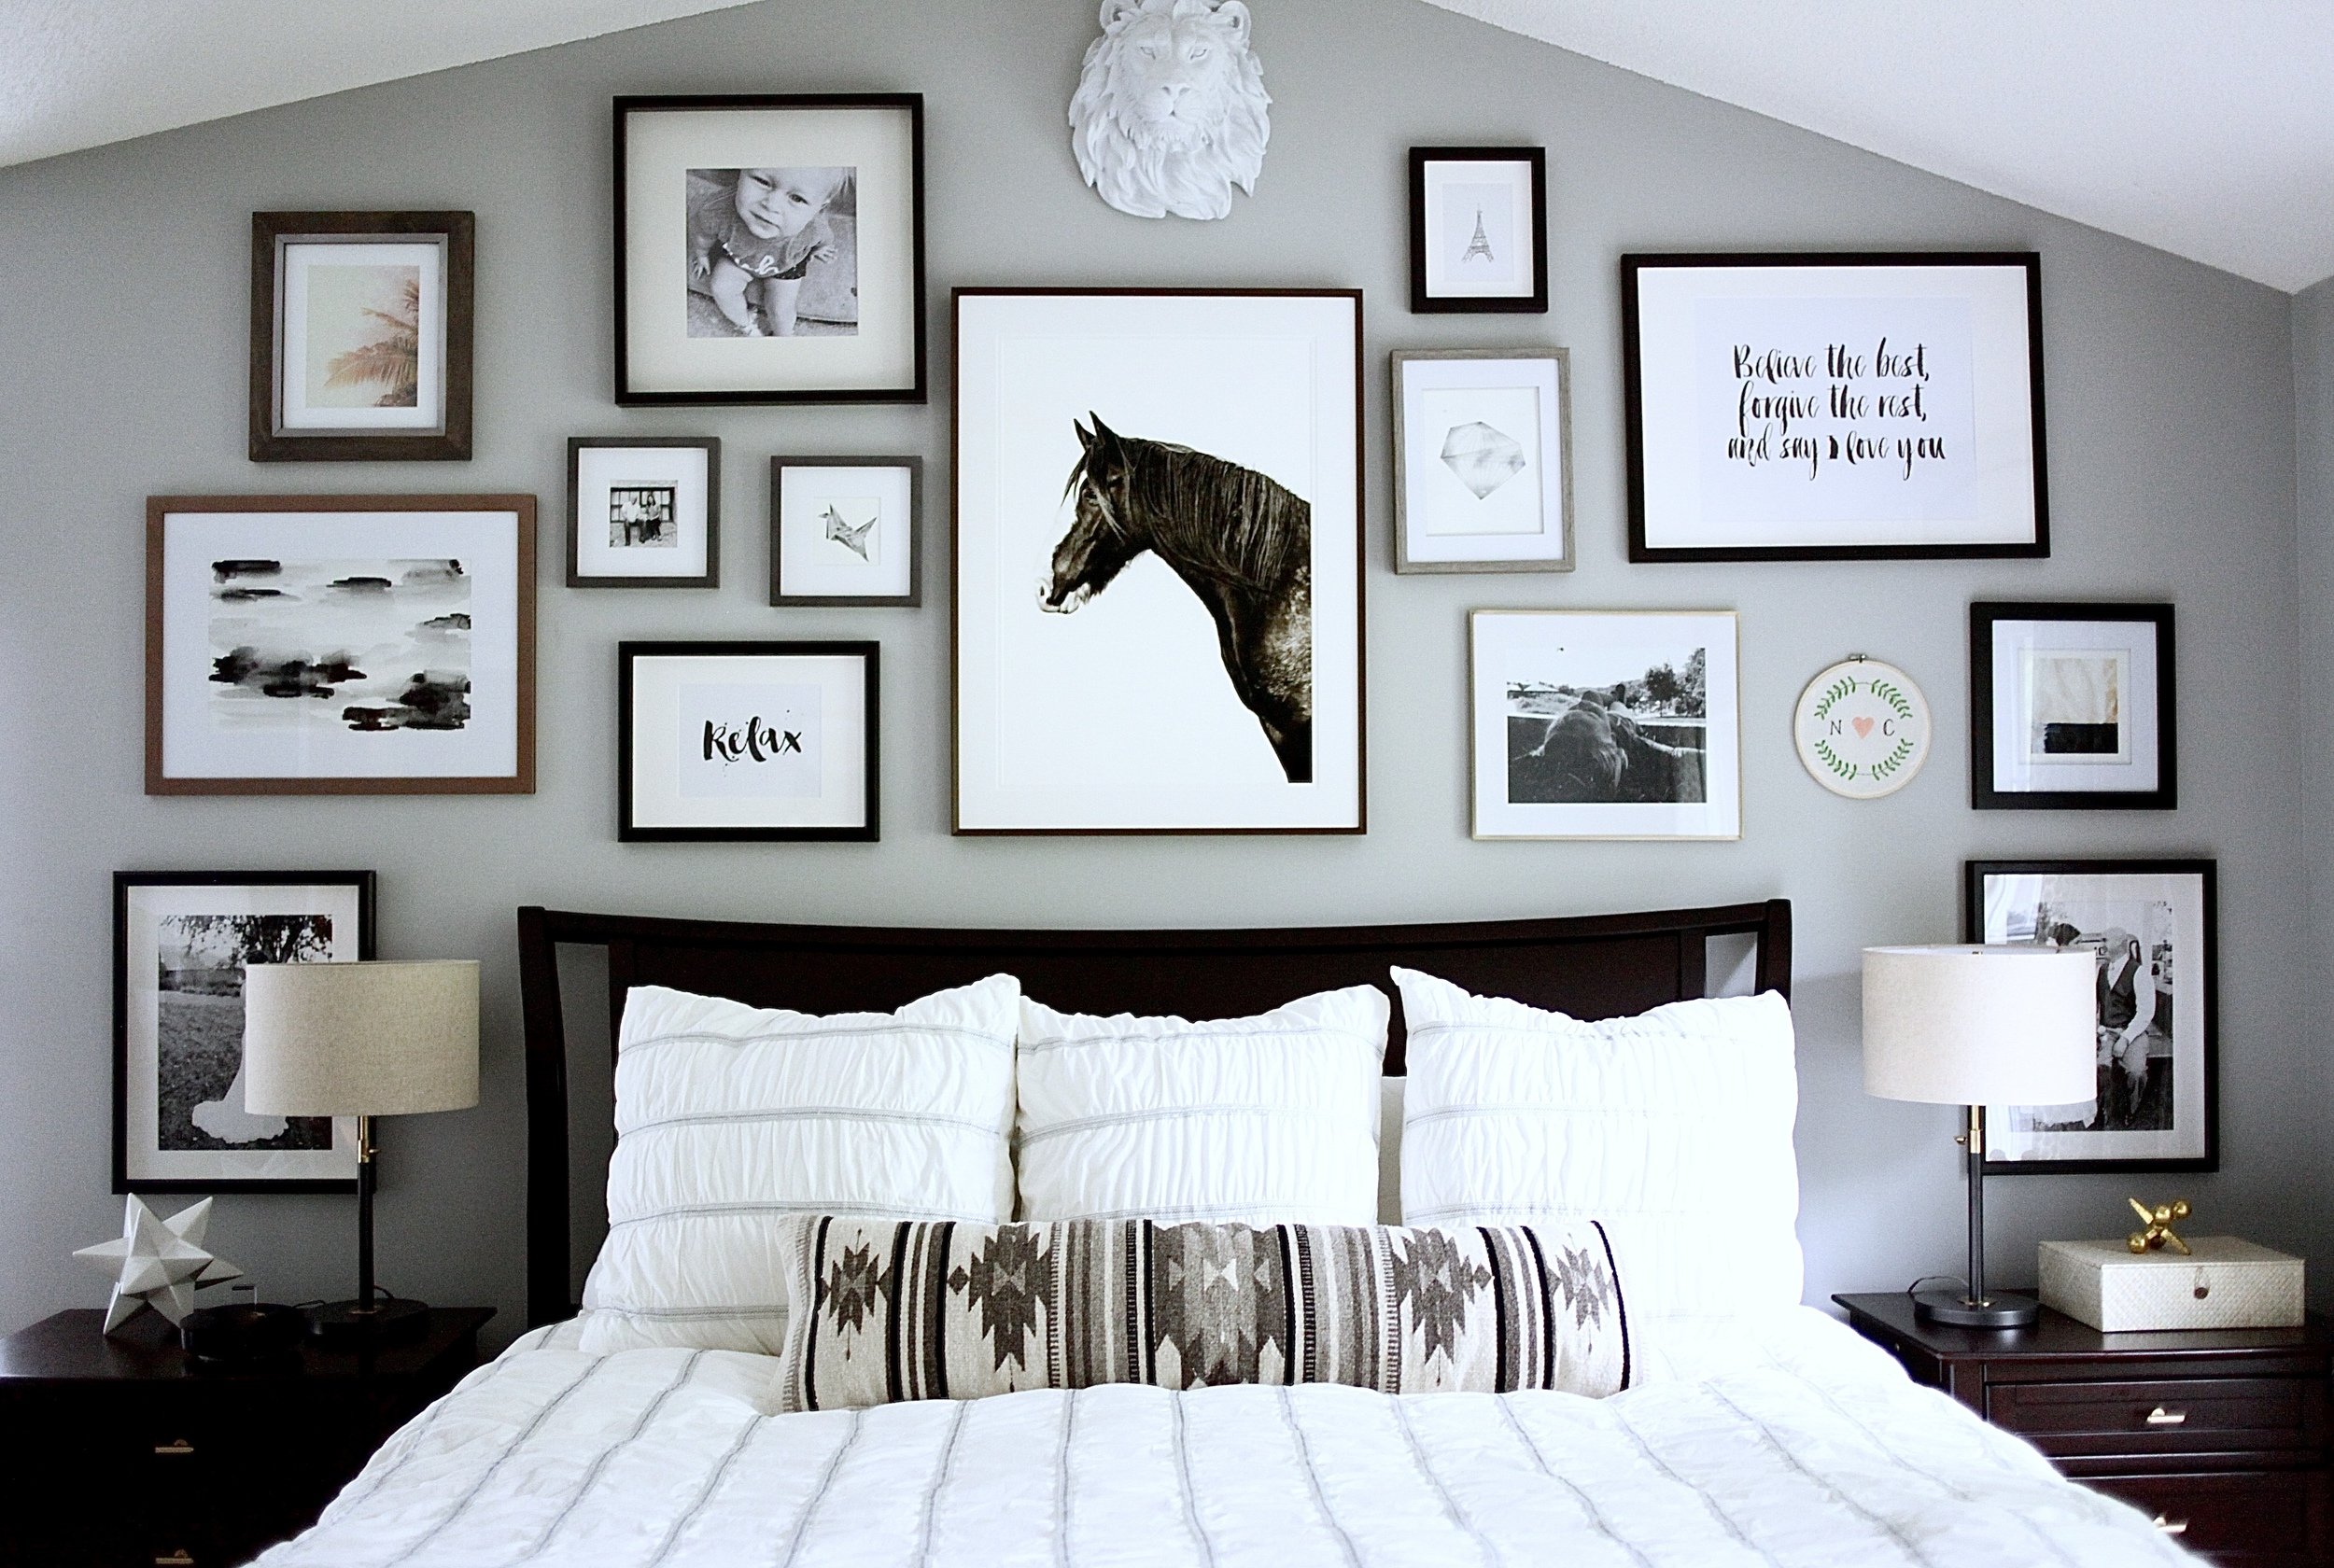 Black and white bedroom with gallery wall above bed, Citizenry Home Goods lumbar pillow, horse photograph and matching lamps